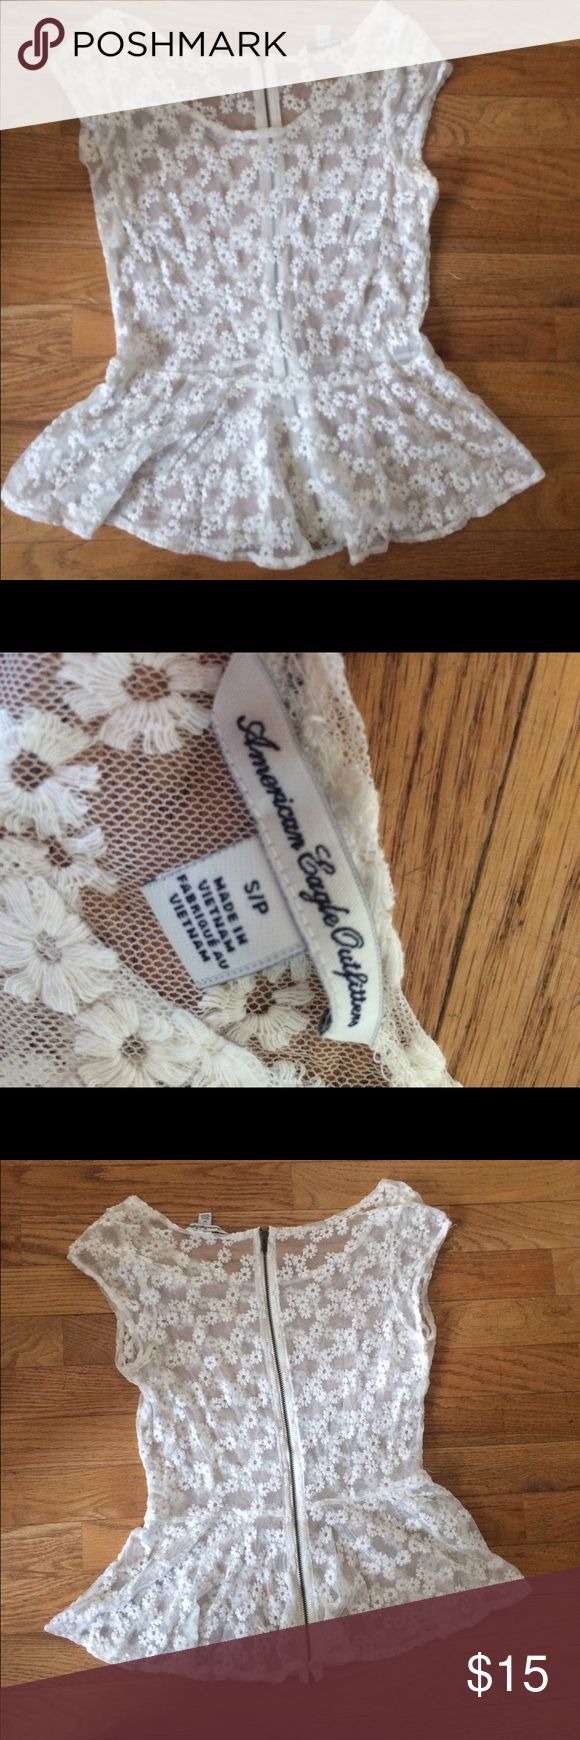 American Eagle white peplum top American Eagle white peplum top. Size small. Perfect condition! American Eagle Outfitters Tops Blouses